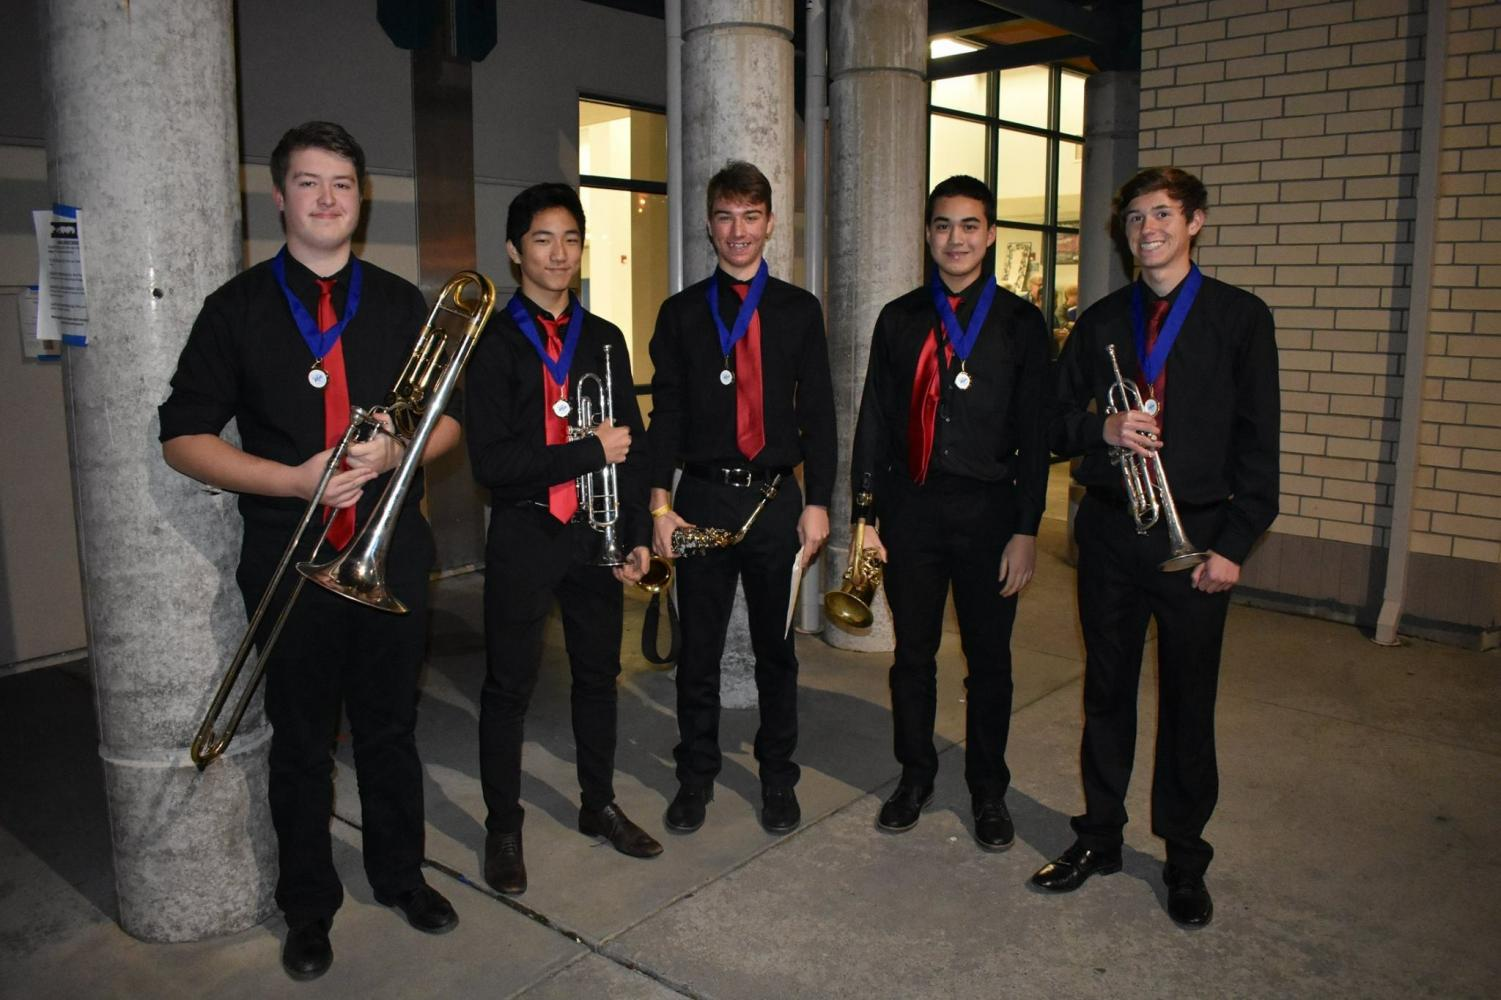 Left to right: Joe Turgeon '19, Donghwan Park '20, Sam Dyer '20, Caelin Sutch '20, and Todd Russell '19 at the annual Folsom Jazz Festival